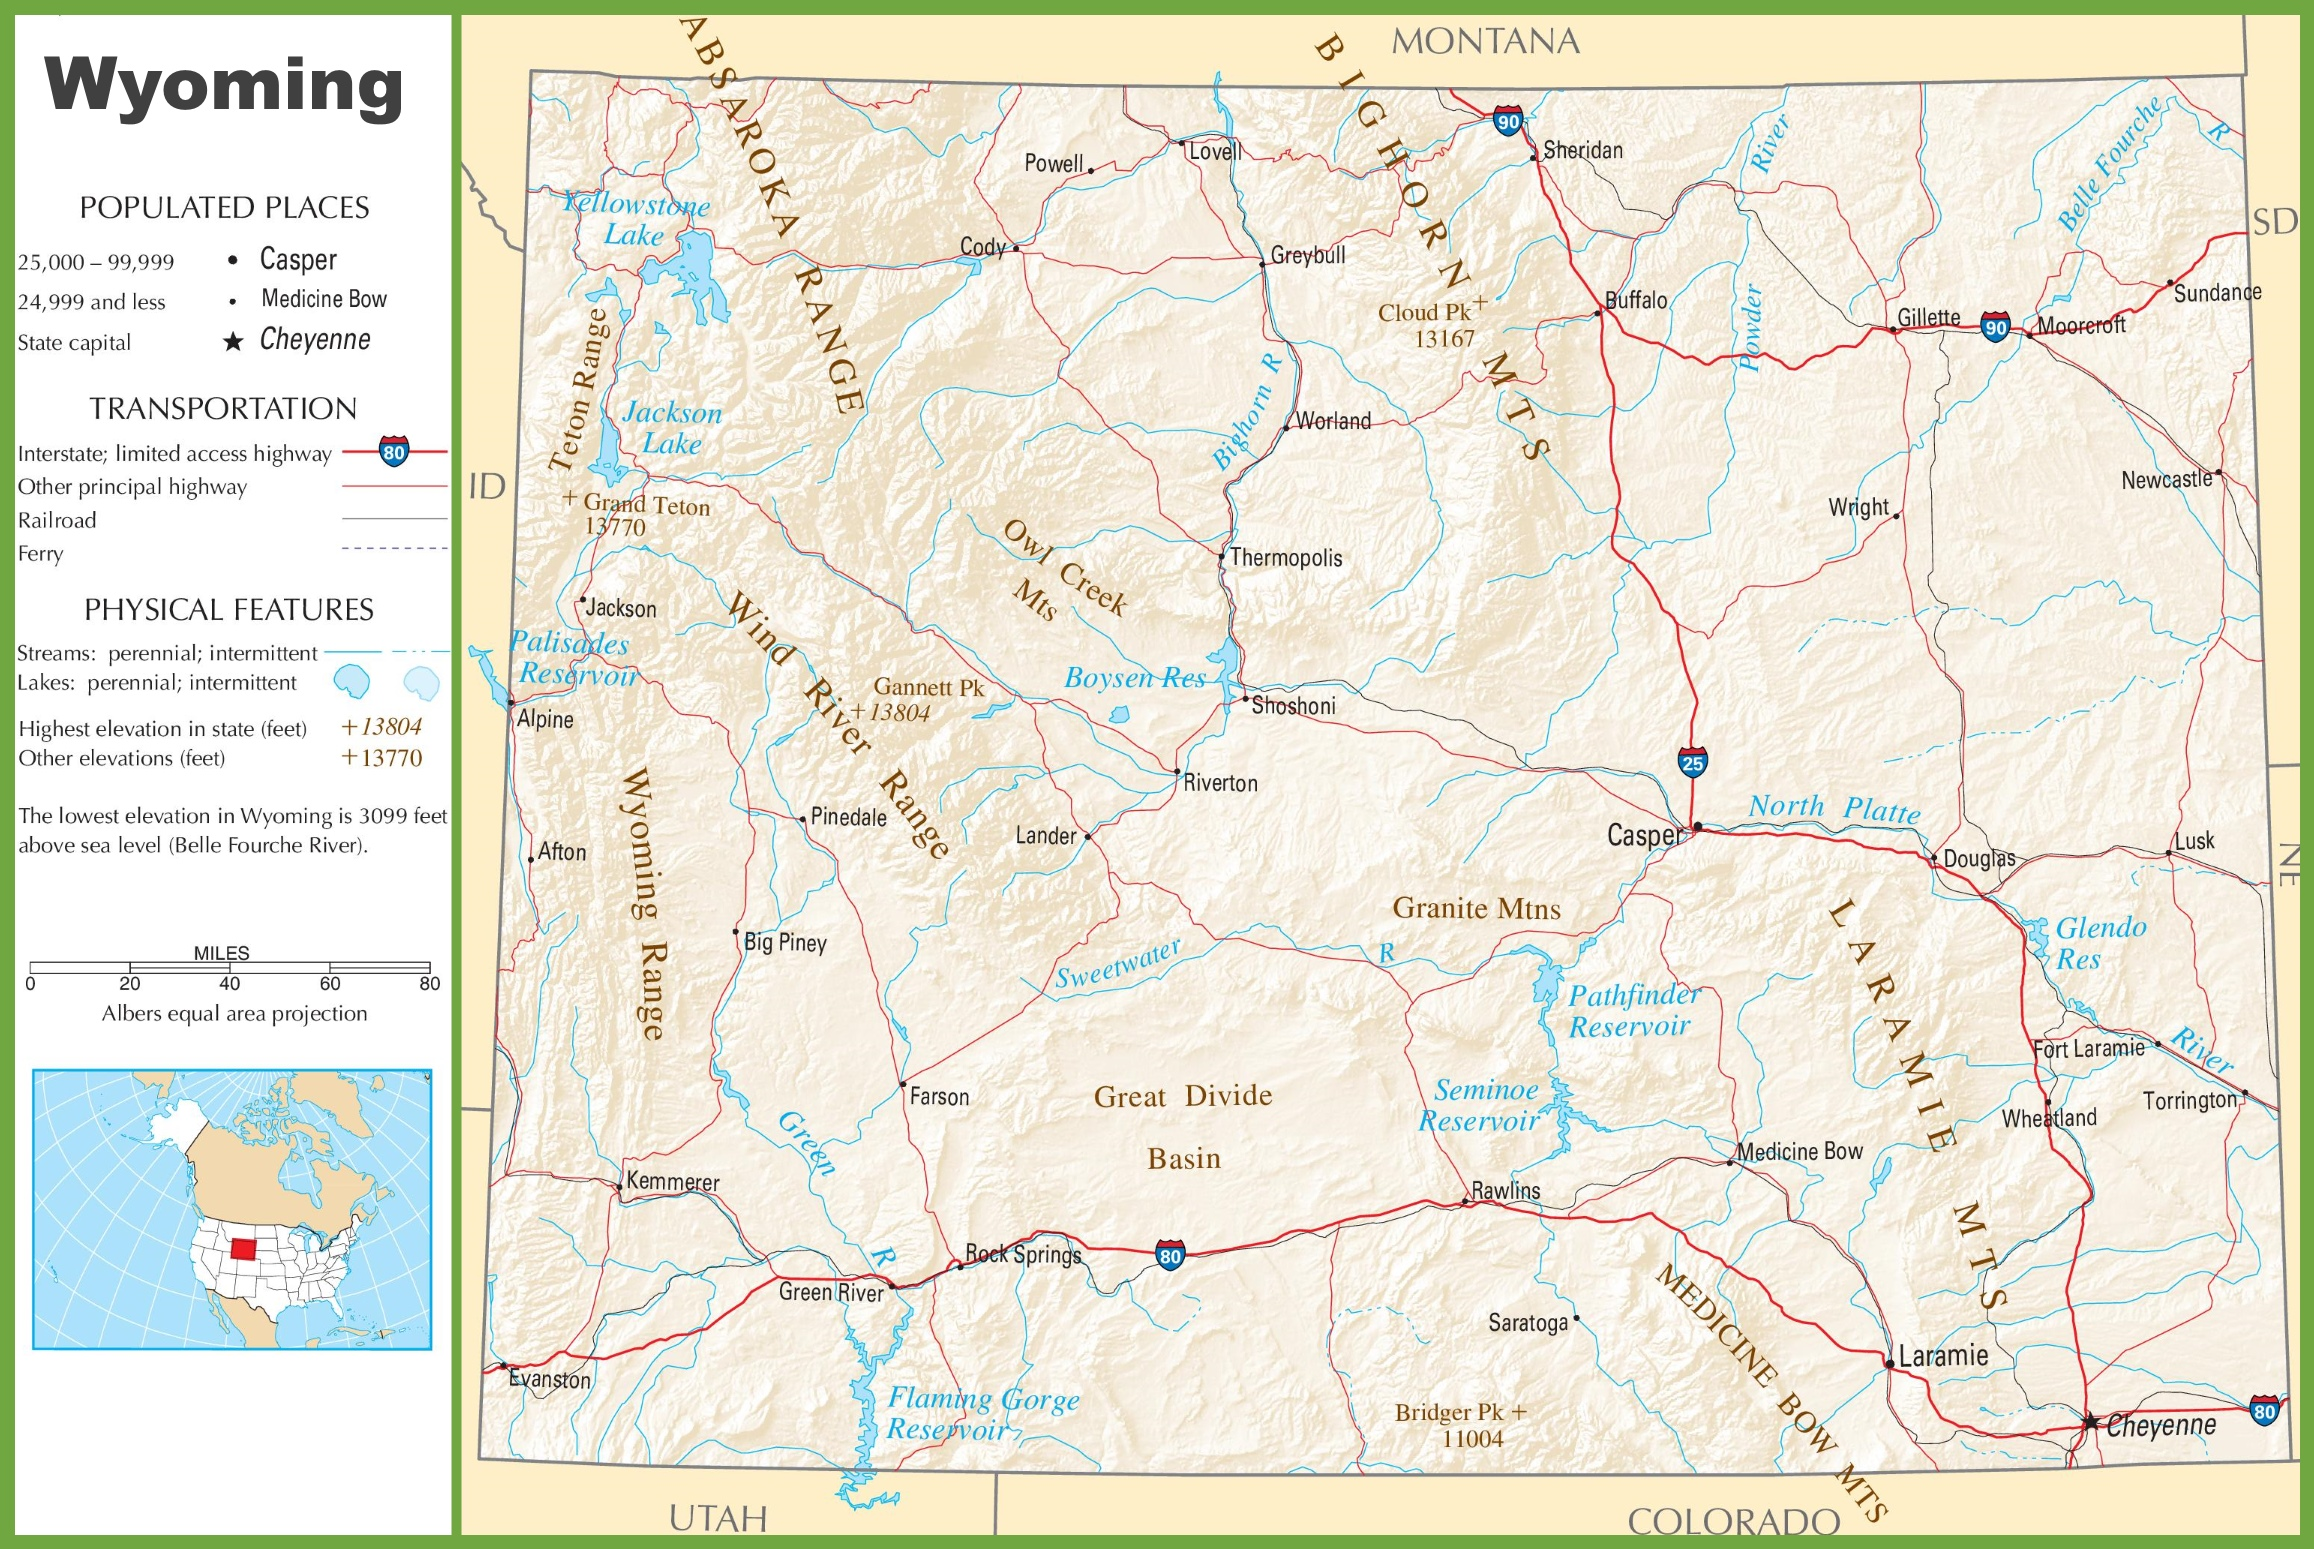 USA Highway Map Highways Map USA Highway Map US Highway Map - Us highway map with speed limits